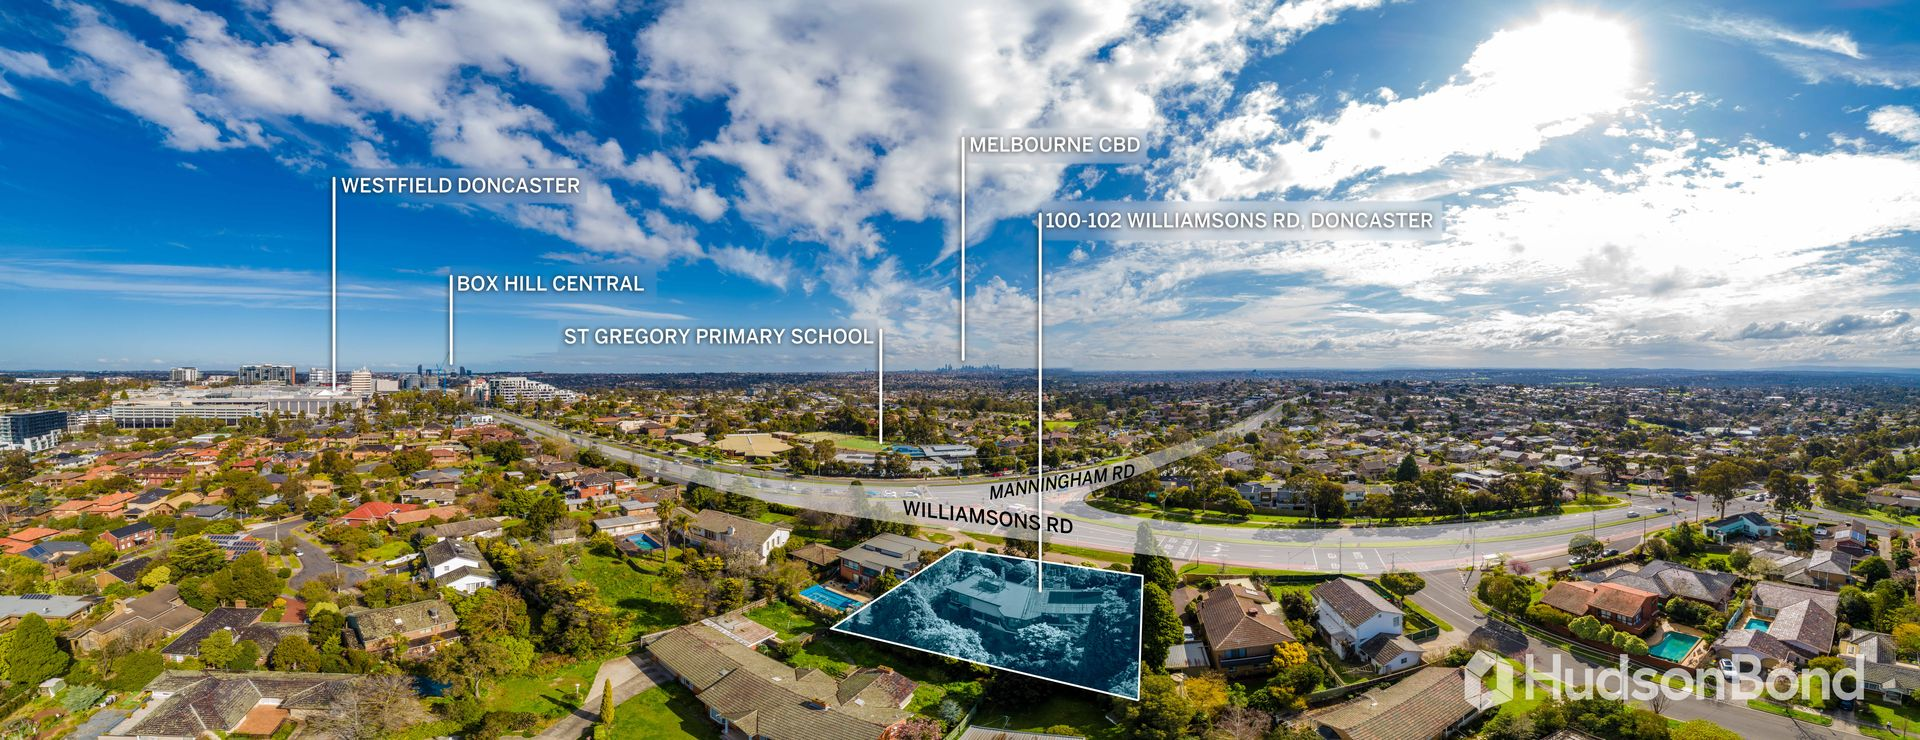 100-102 Williamsons Road, Doncaster VIC 3108, Image 2